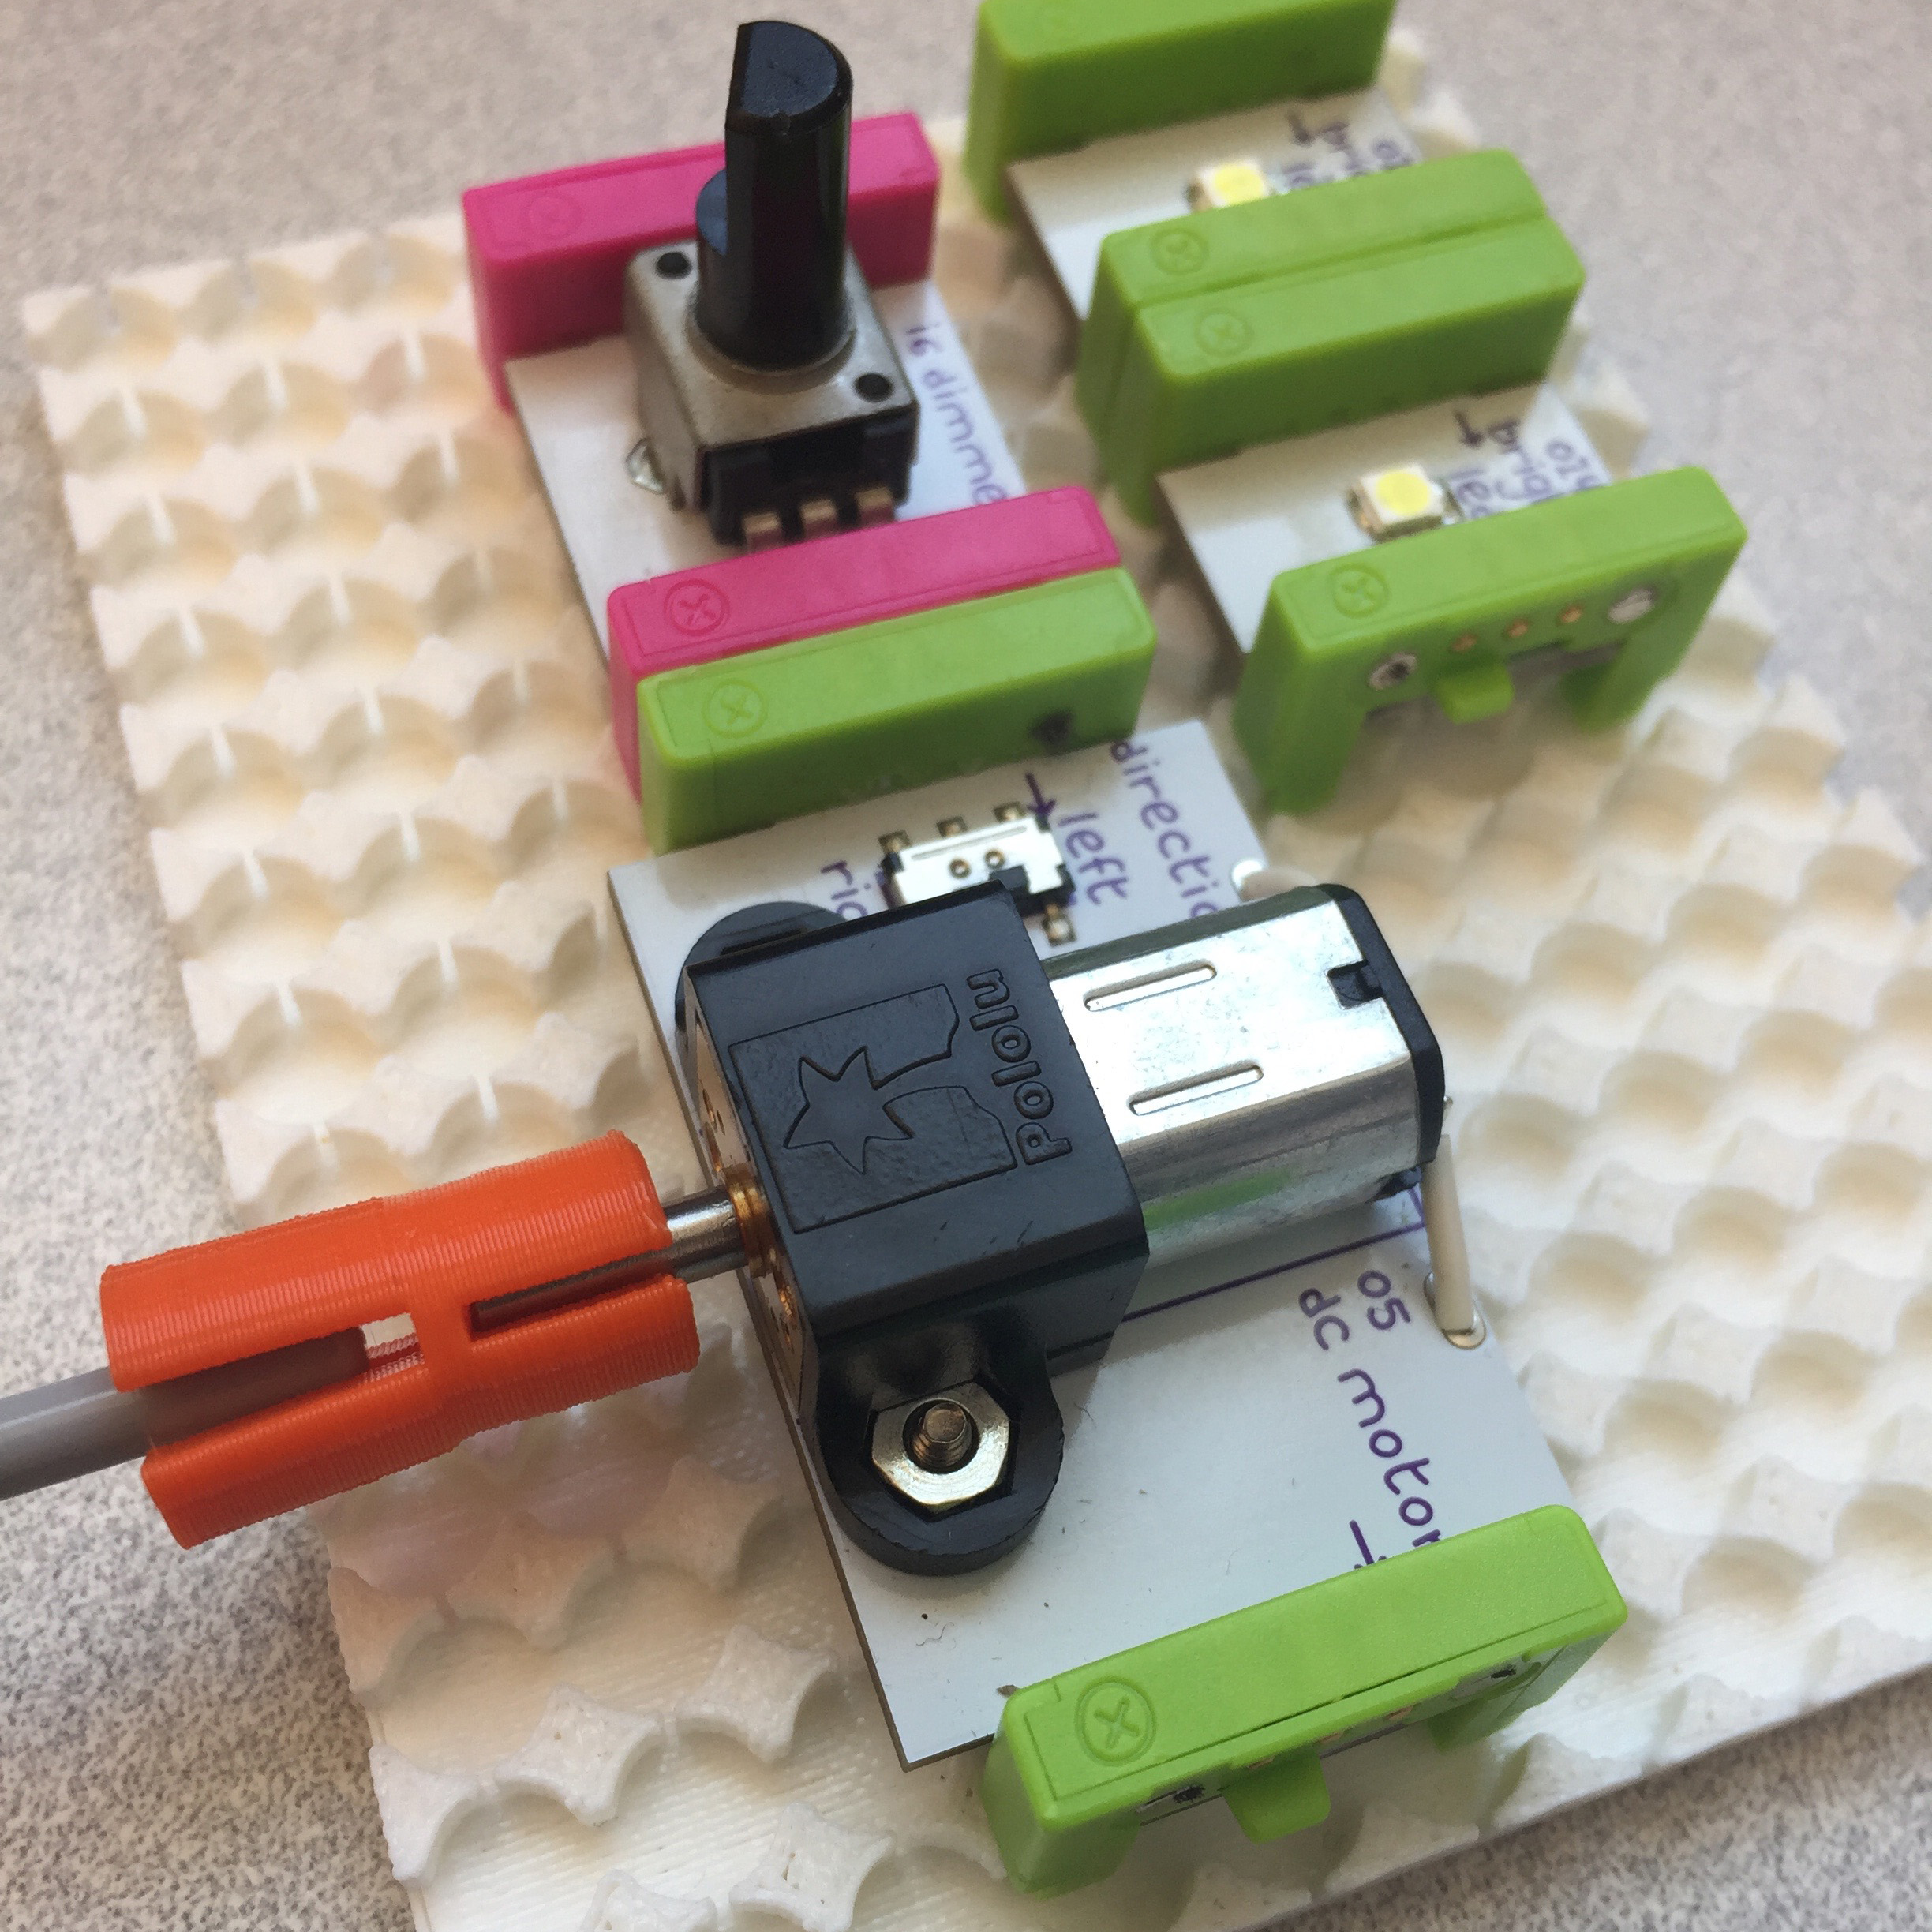 3D printed prototyping board for LittleBits and DC motor accessory